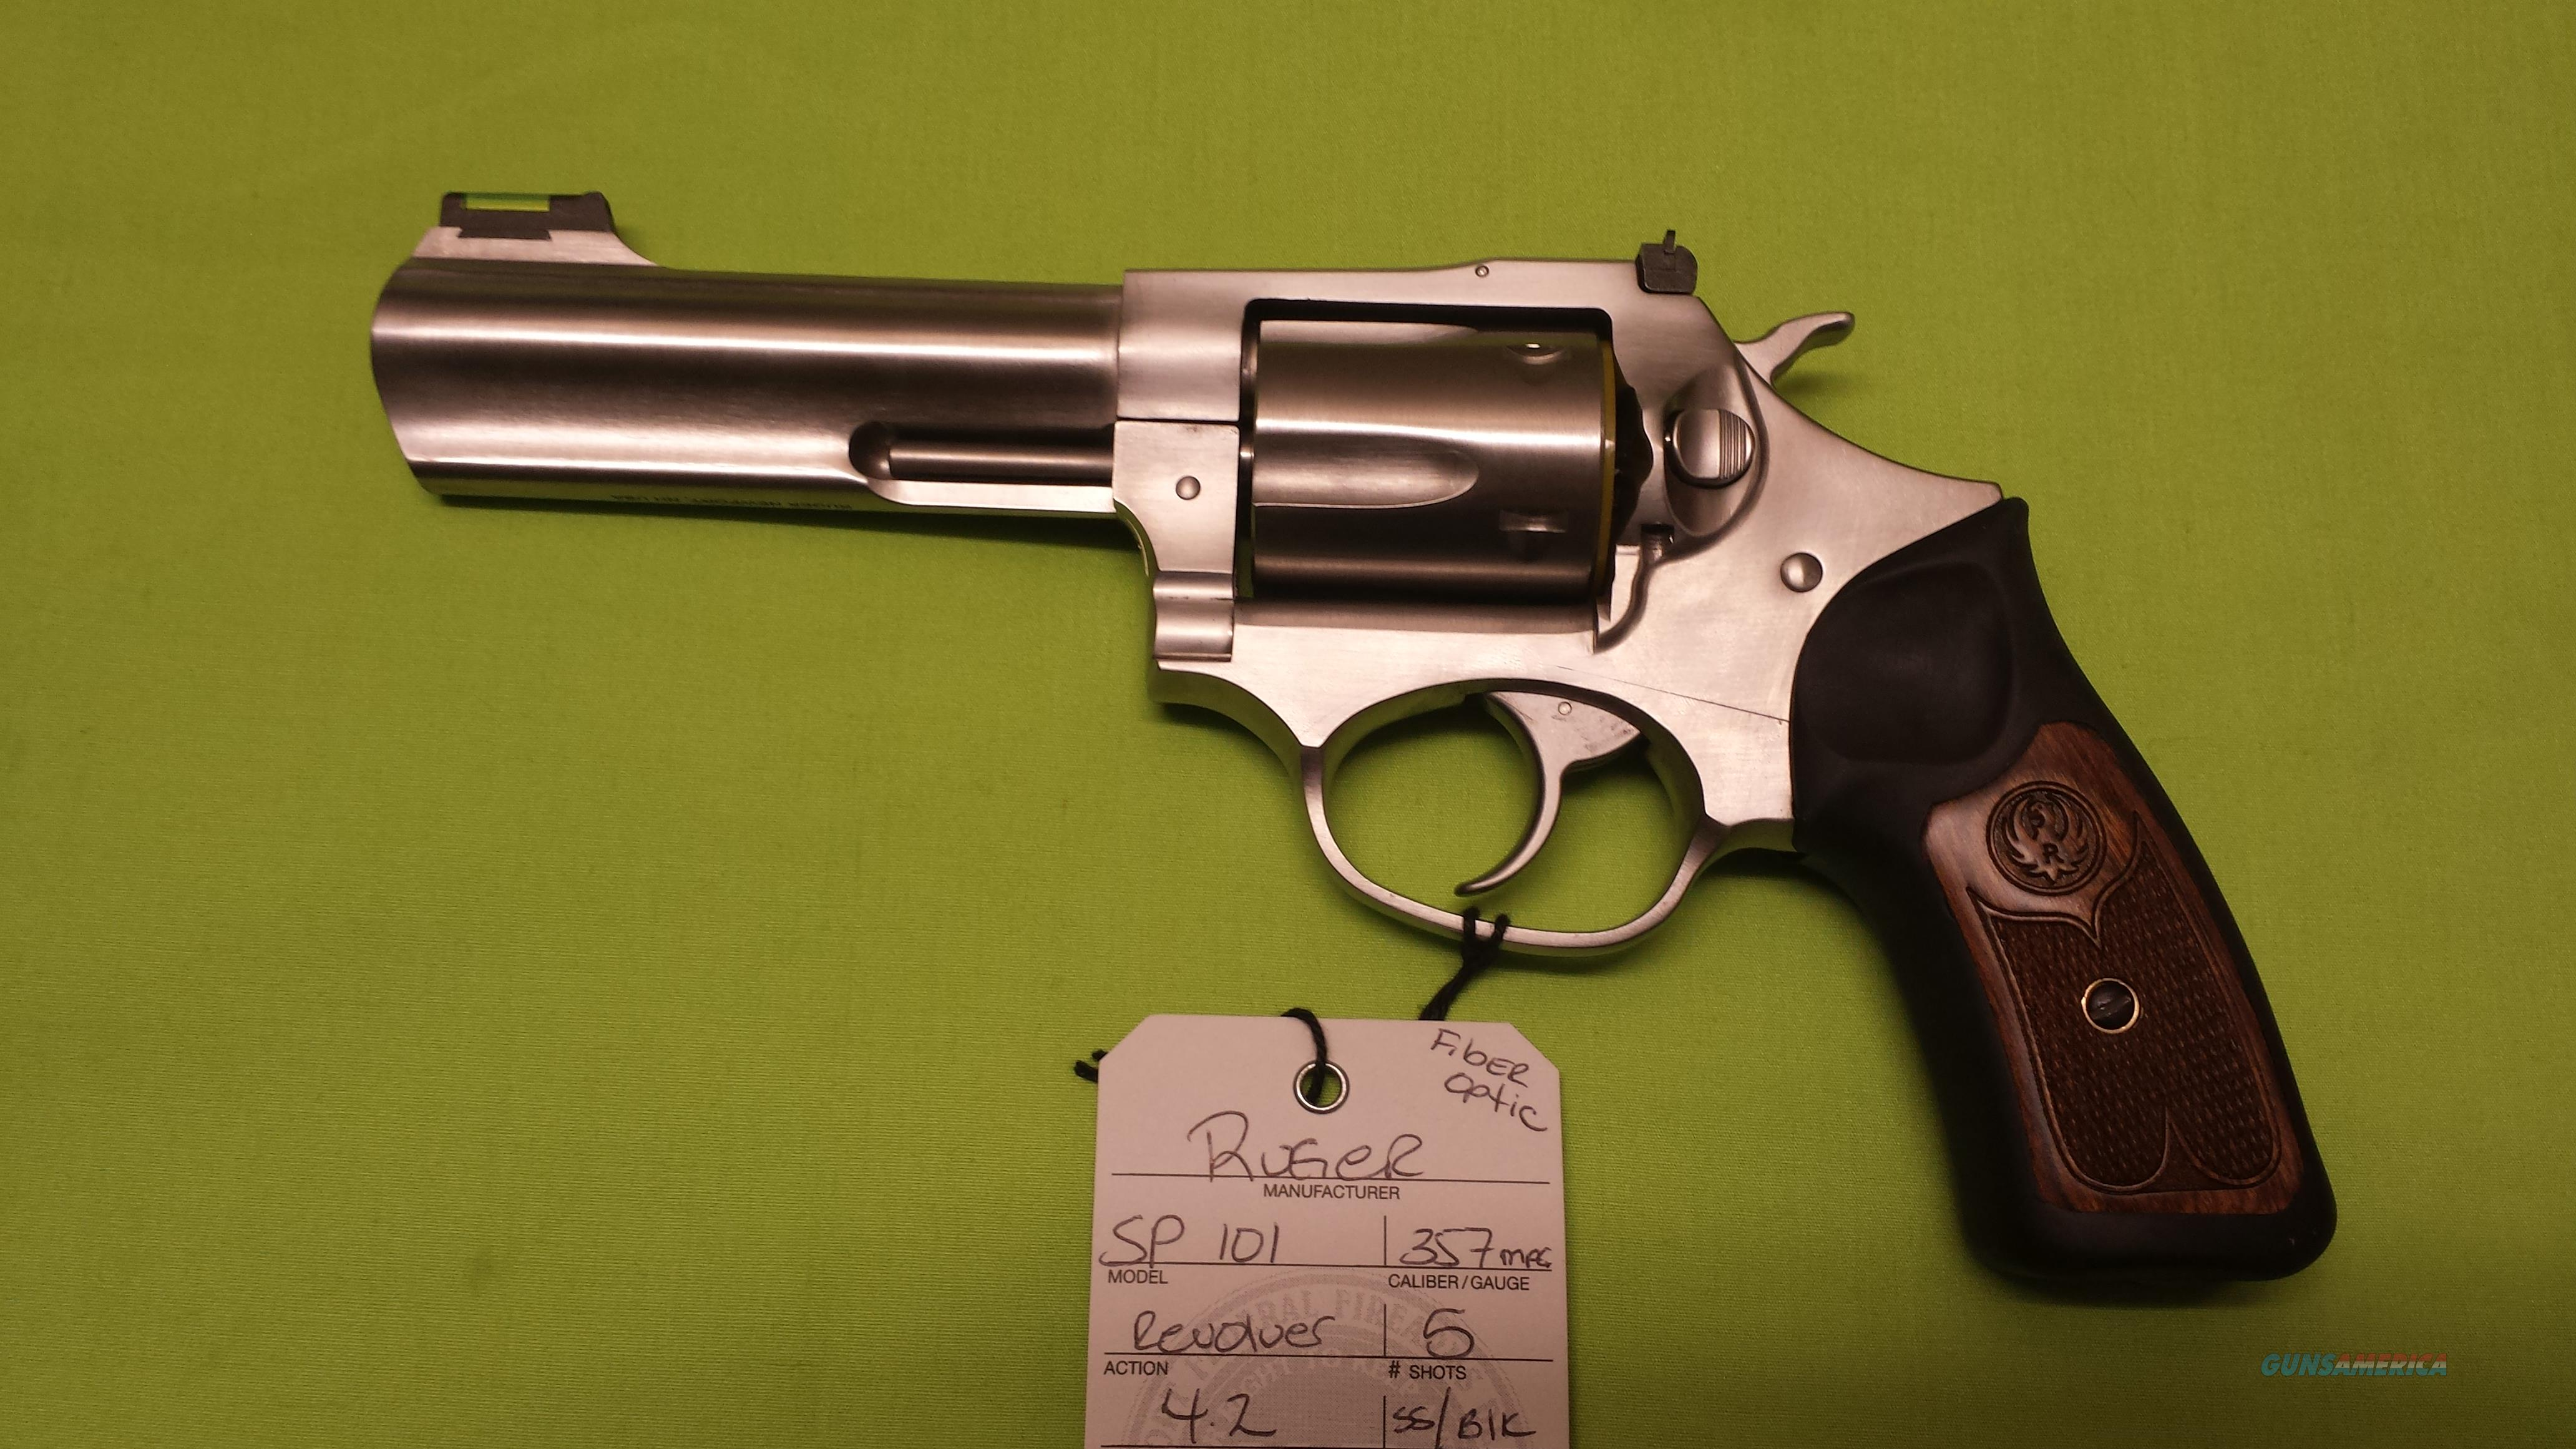 RUGER SP101 SP 101 357 MAG REVOLVER 4.2 STAINLESS  Guns > Pistols > Ruger Double Action Revolver > SP101 Type